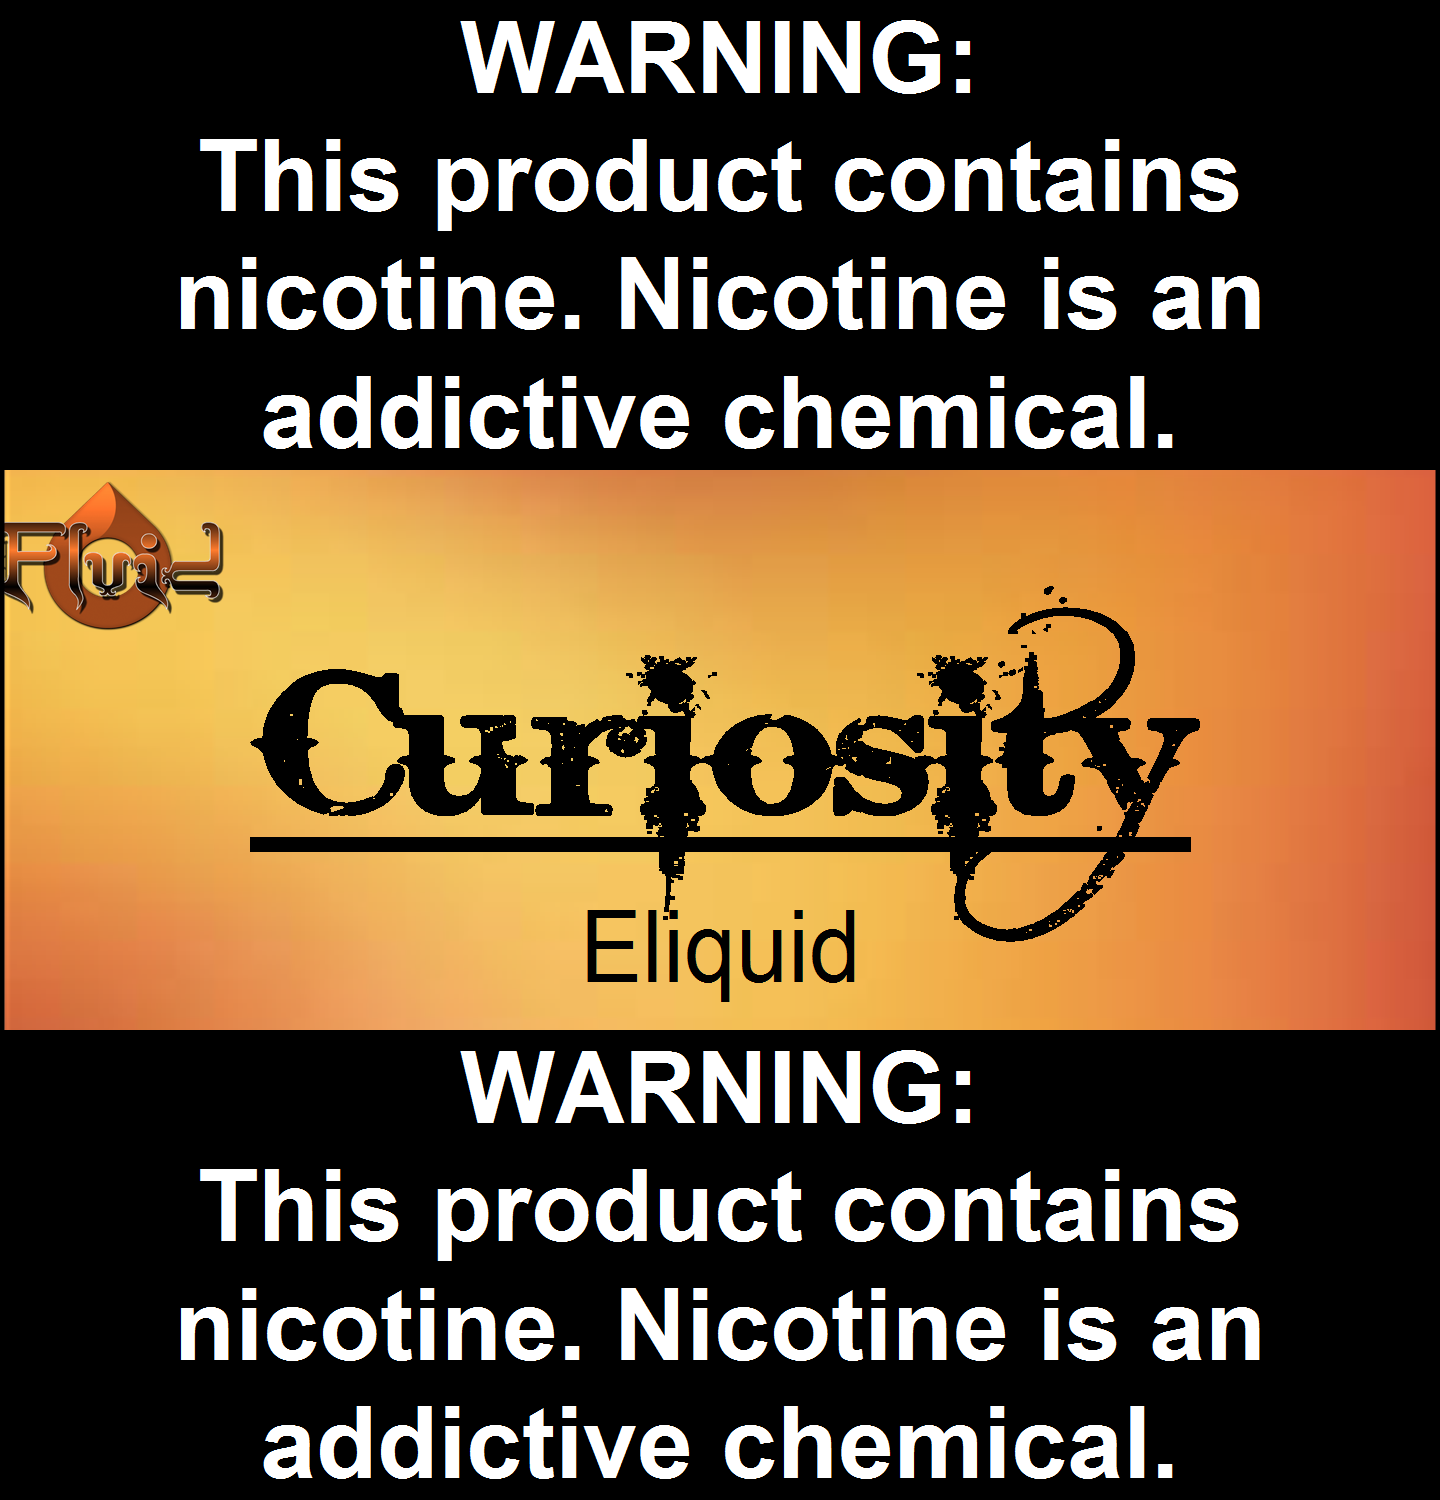 Curiosity Eliquid